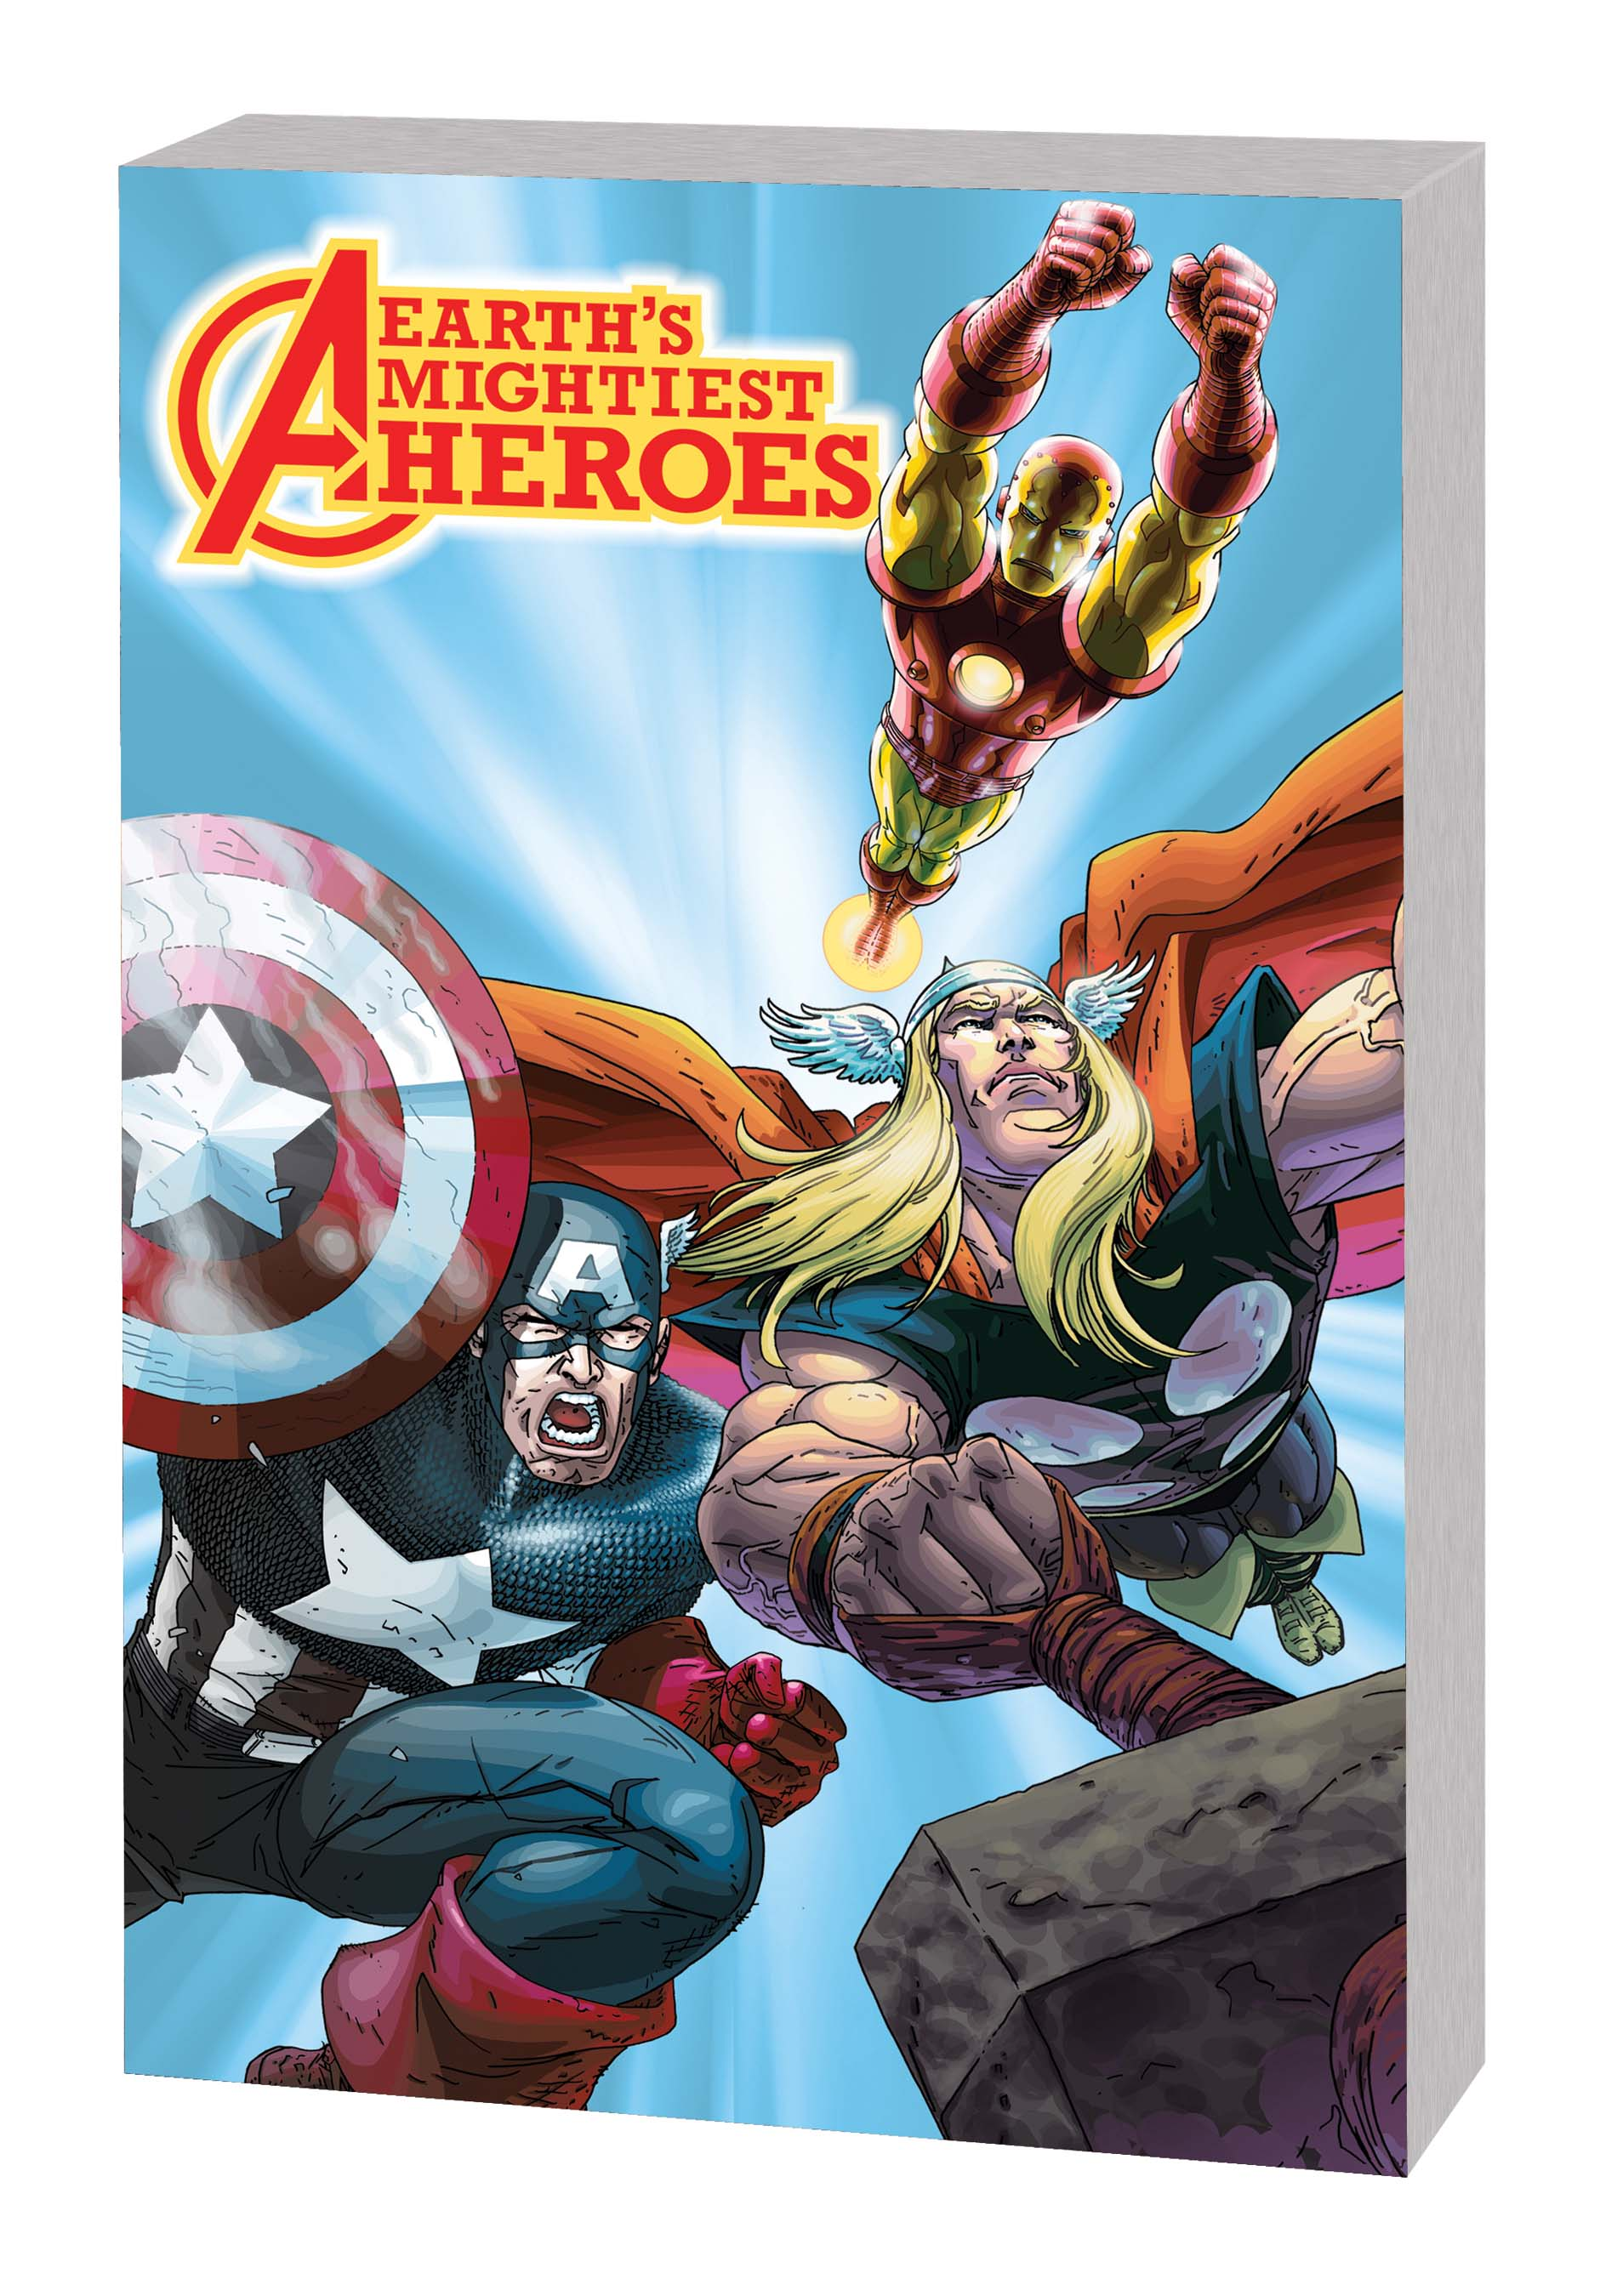 Avengers: Earth's Mightiest Heroes Ultimate Collection (Trade Paperback)